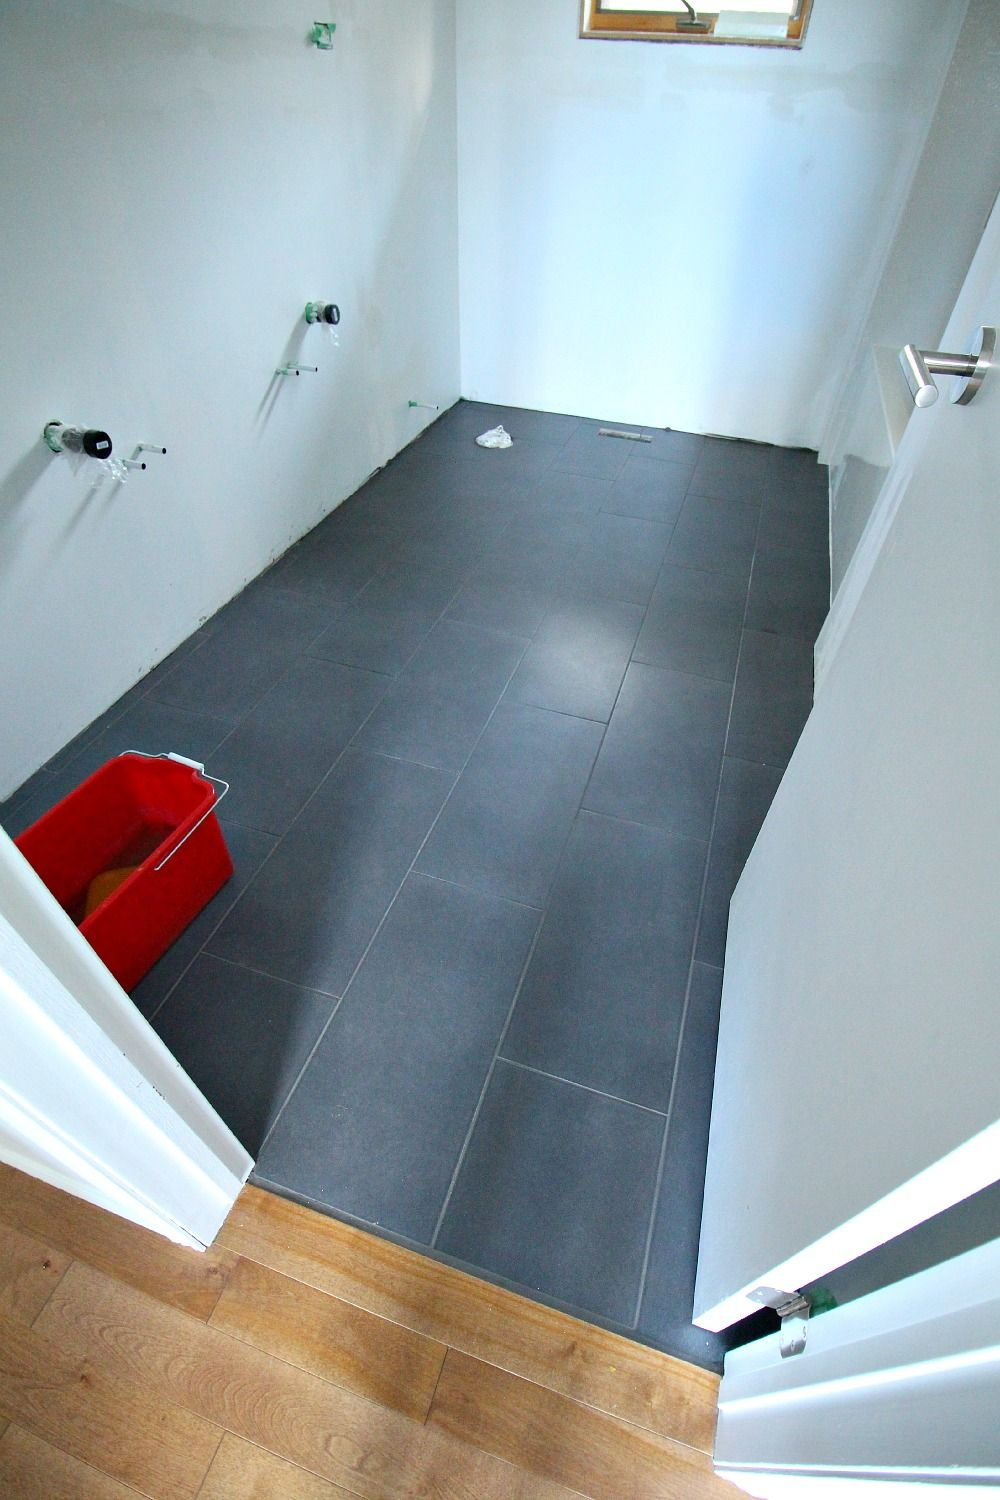 charcoal grey large rectangular bathroom floor tile with